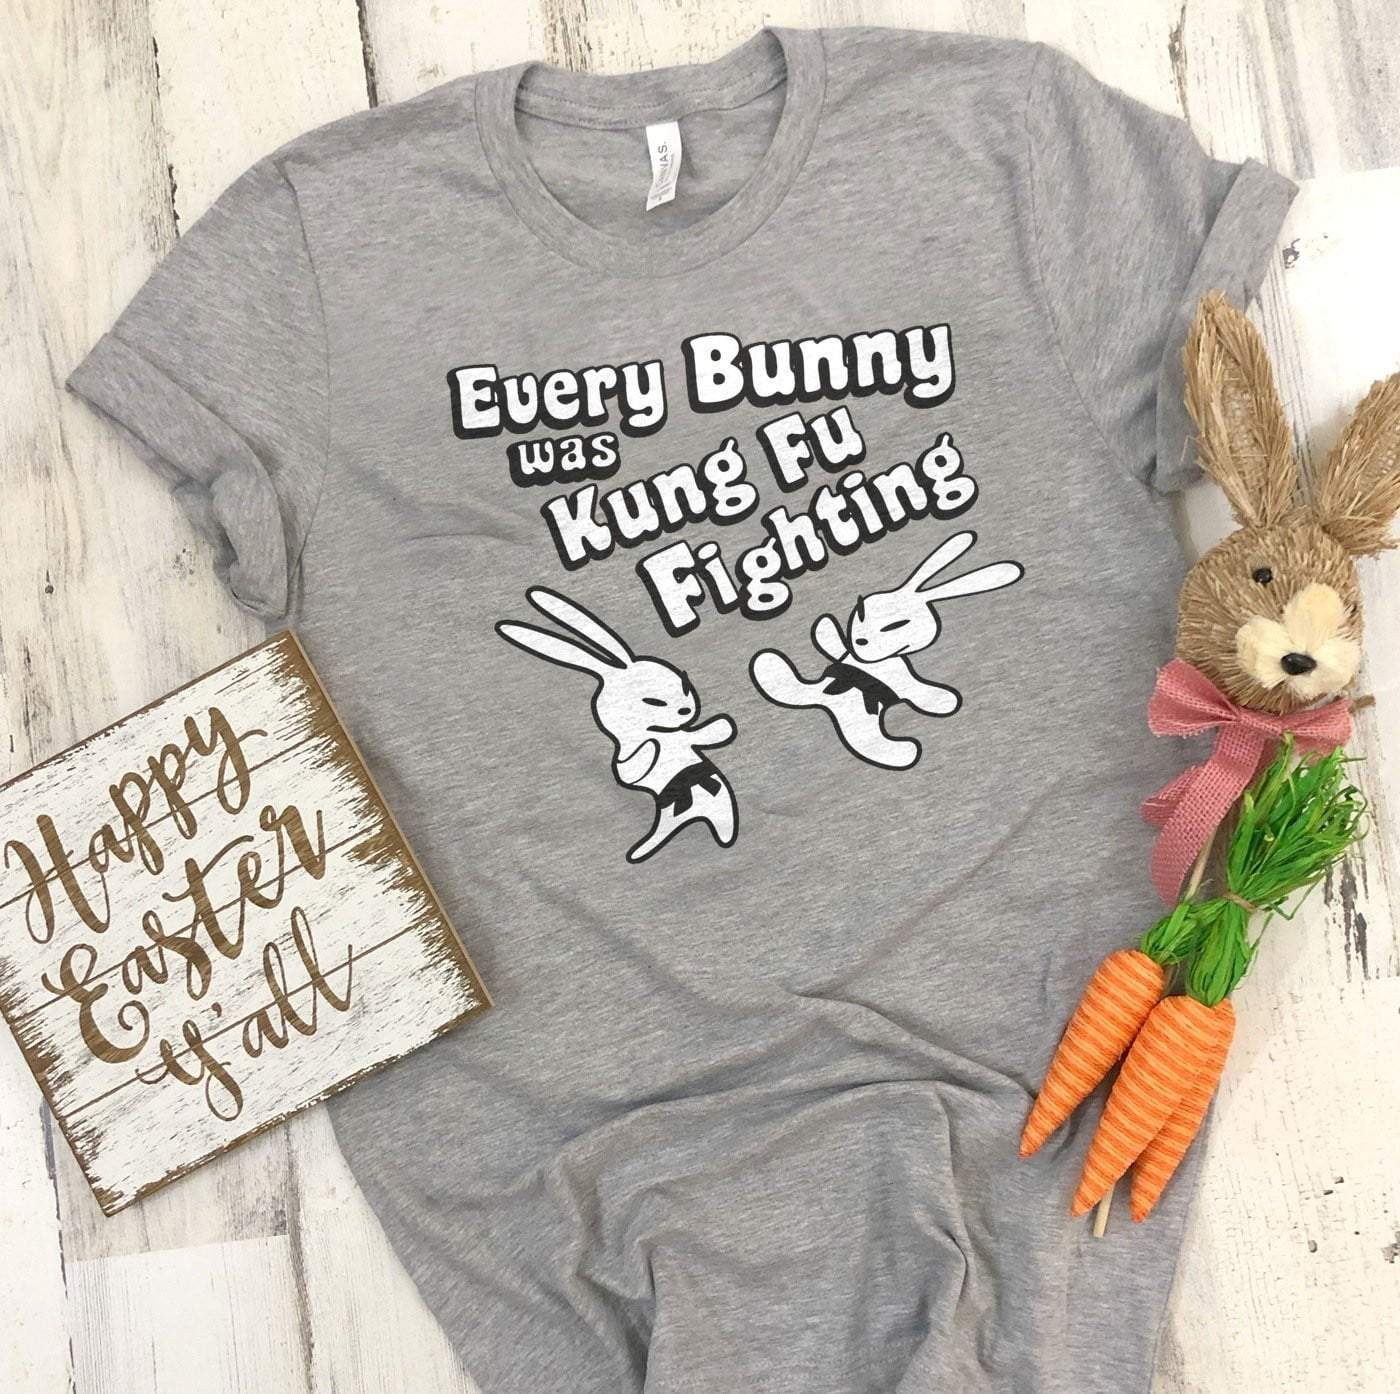 EVERY BUNNY WAS KUNG FU FIGHTING Easter T's And Crews